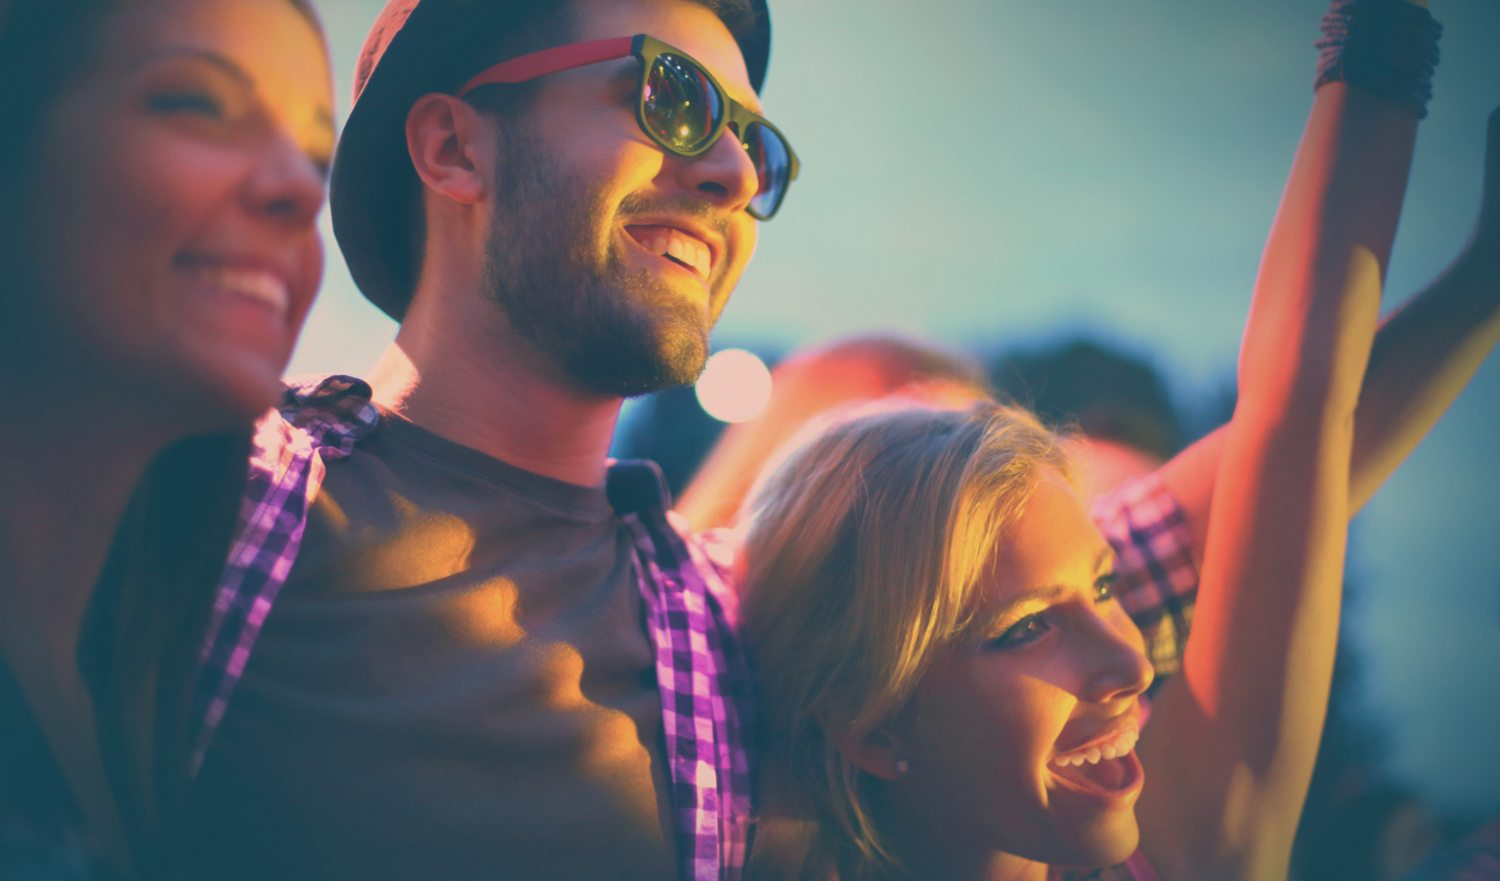 Group of friends enjoying a concert.Two girls and a guy standing embraced,looking at stage and cheering.All of them laughing,the guy is wearing sunglasses.It's summer sunset